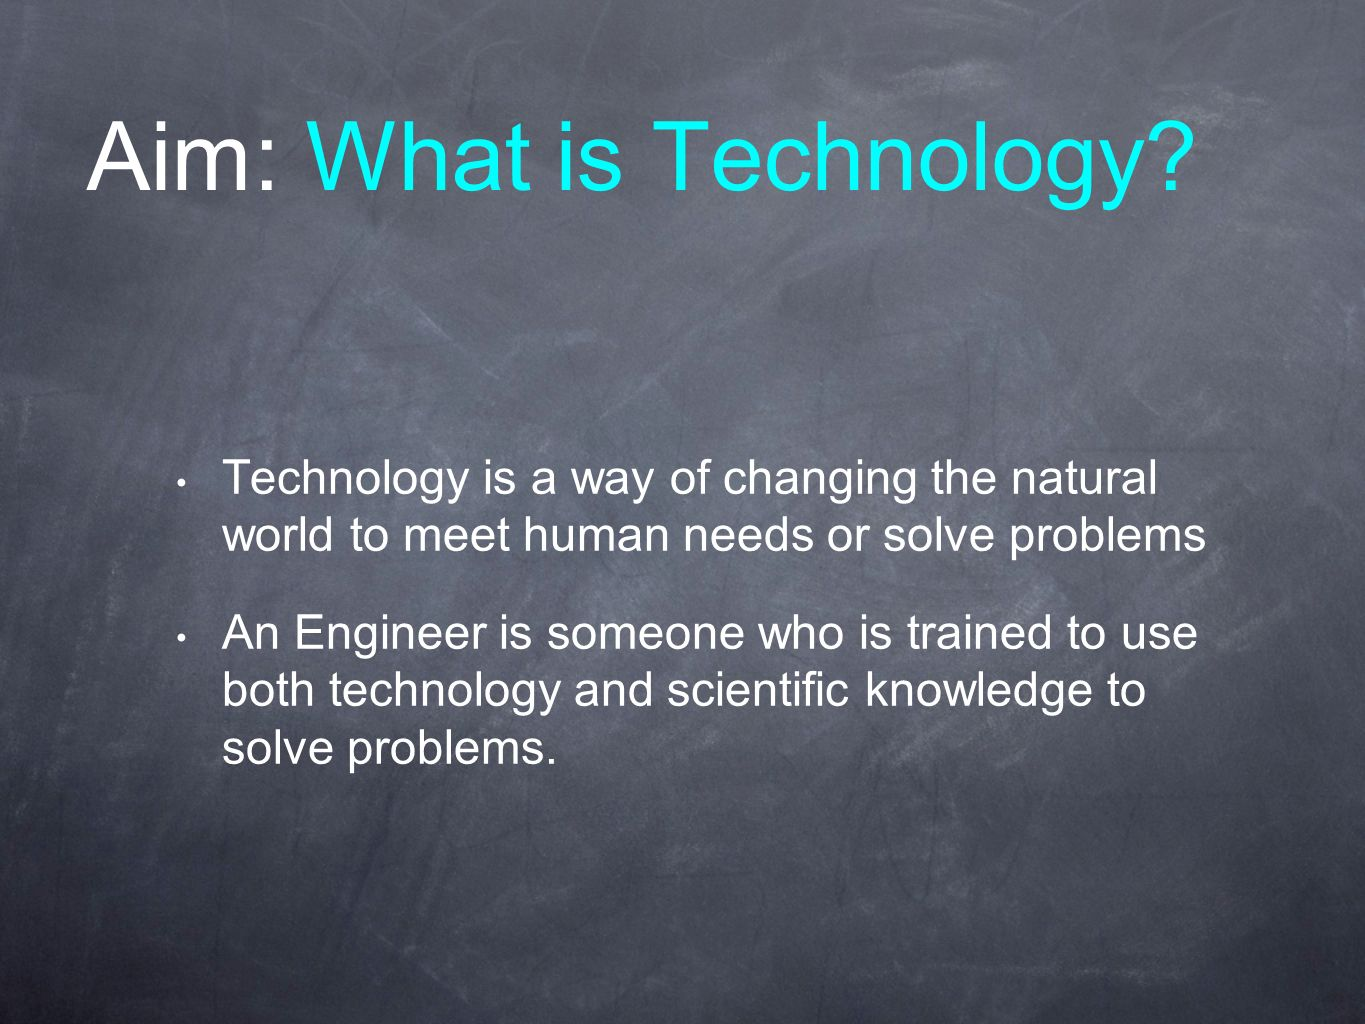 Aim: What is Technology